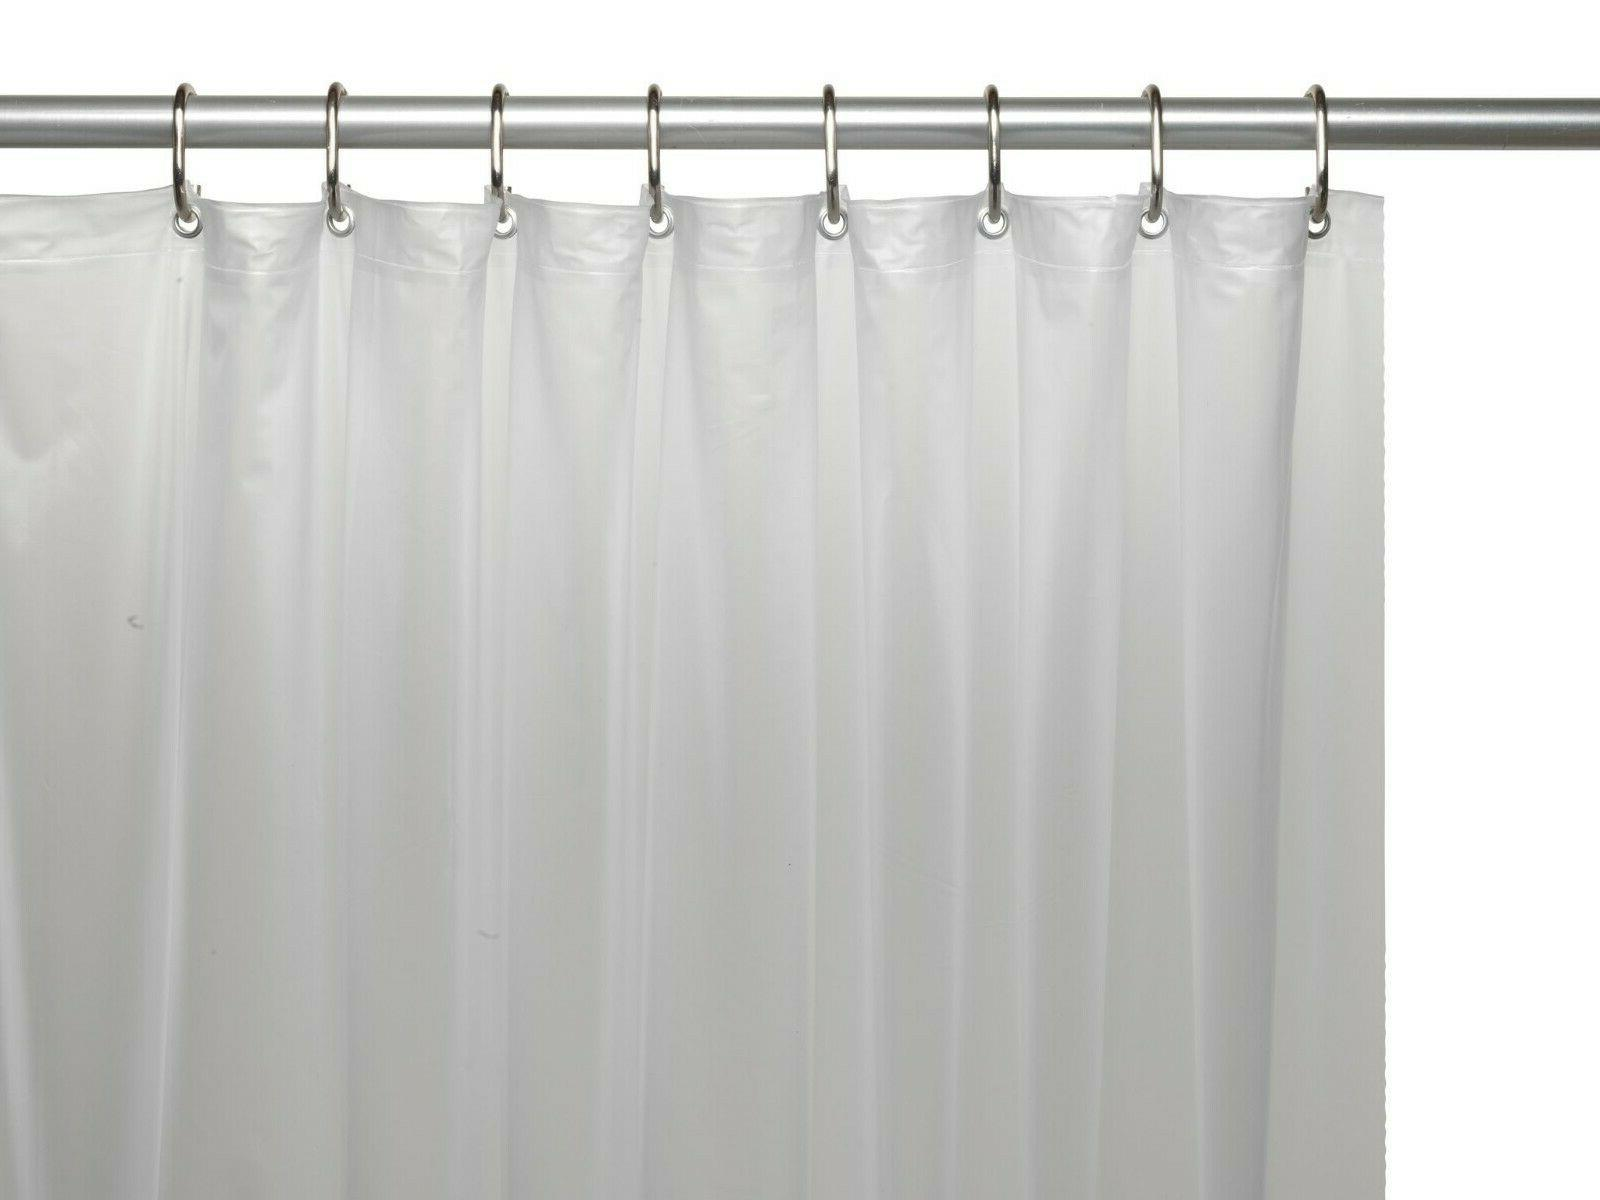 Hotel Duty Gauge Vinyl Shower Liners - & Sizes